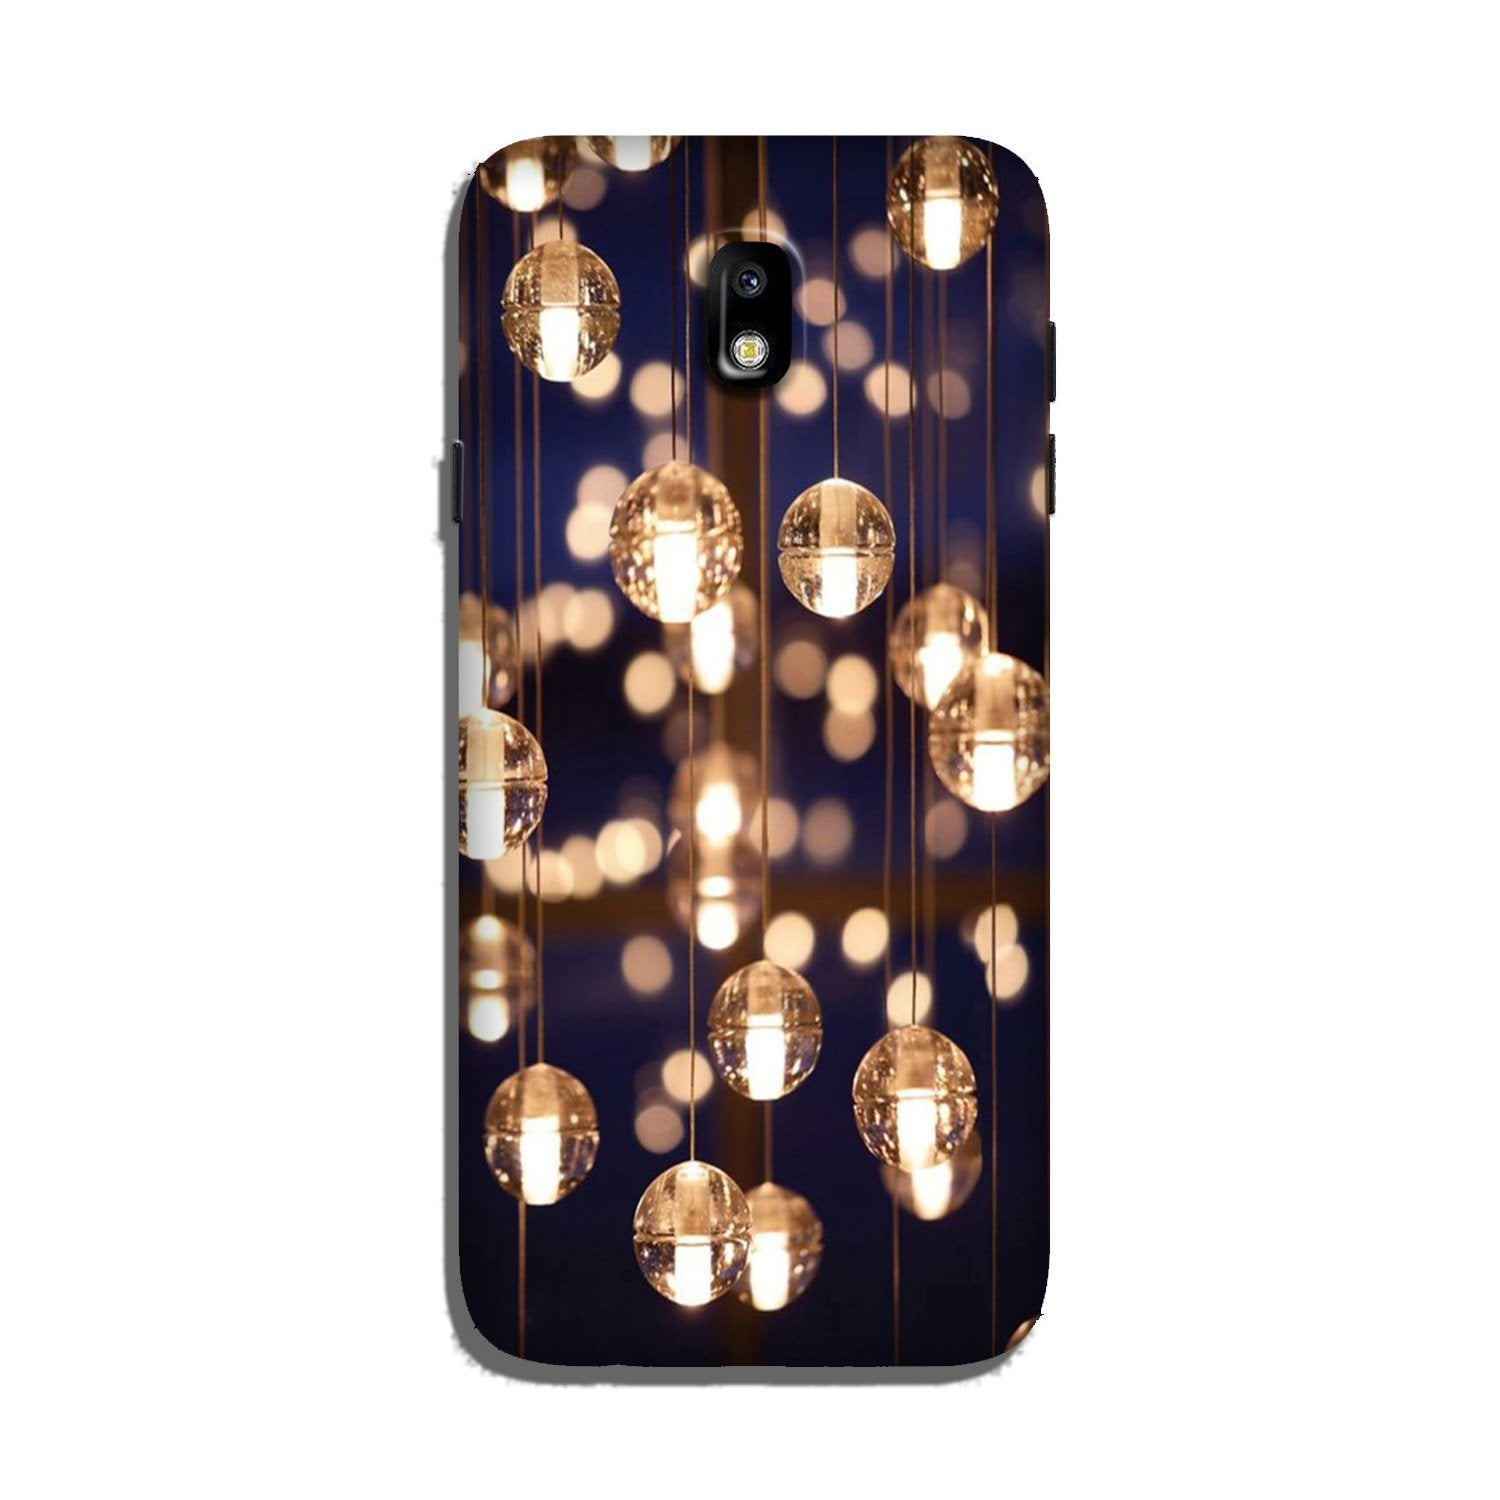 Party Bulb2 Case for Galaxy J7 Pro